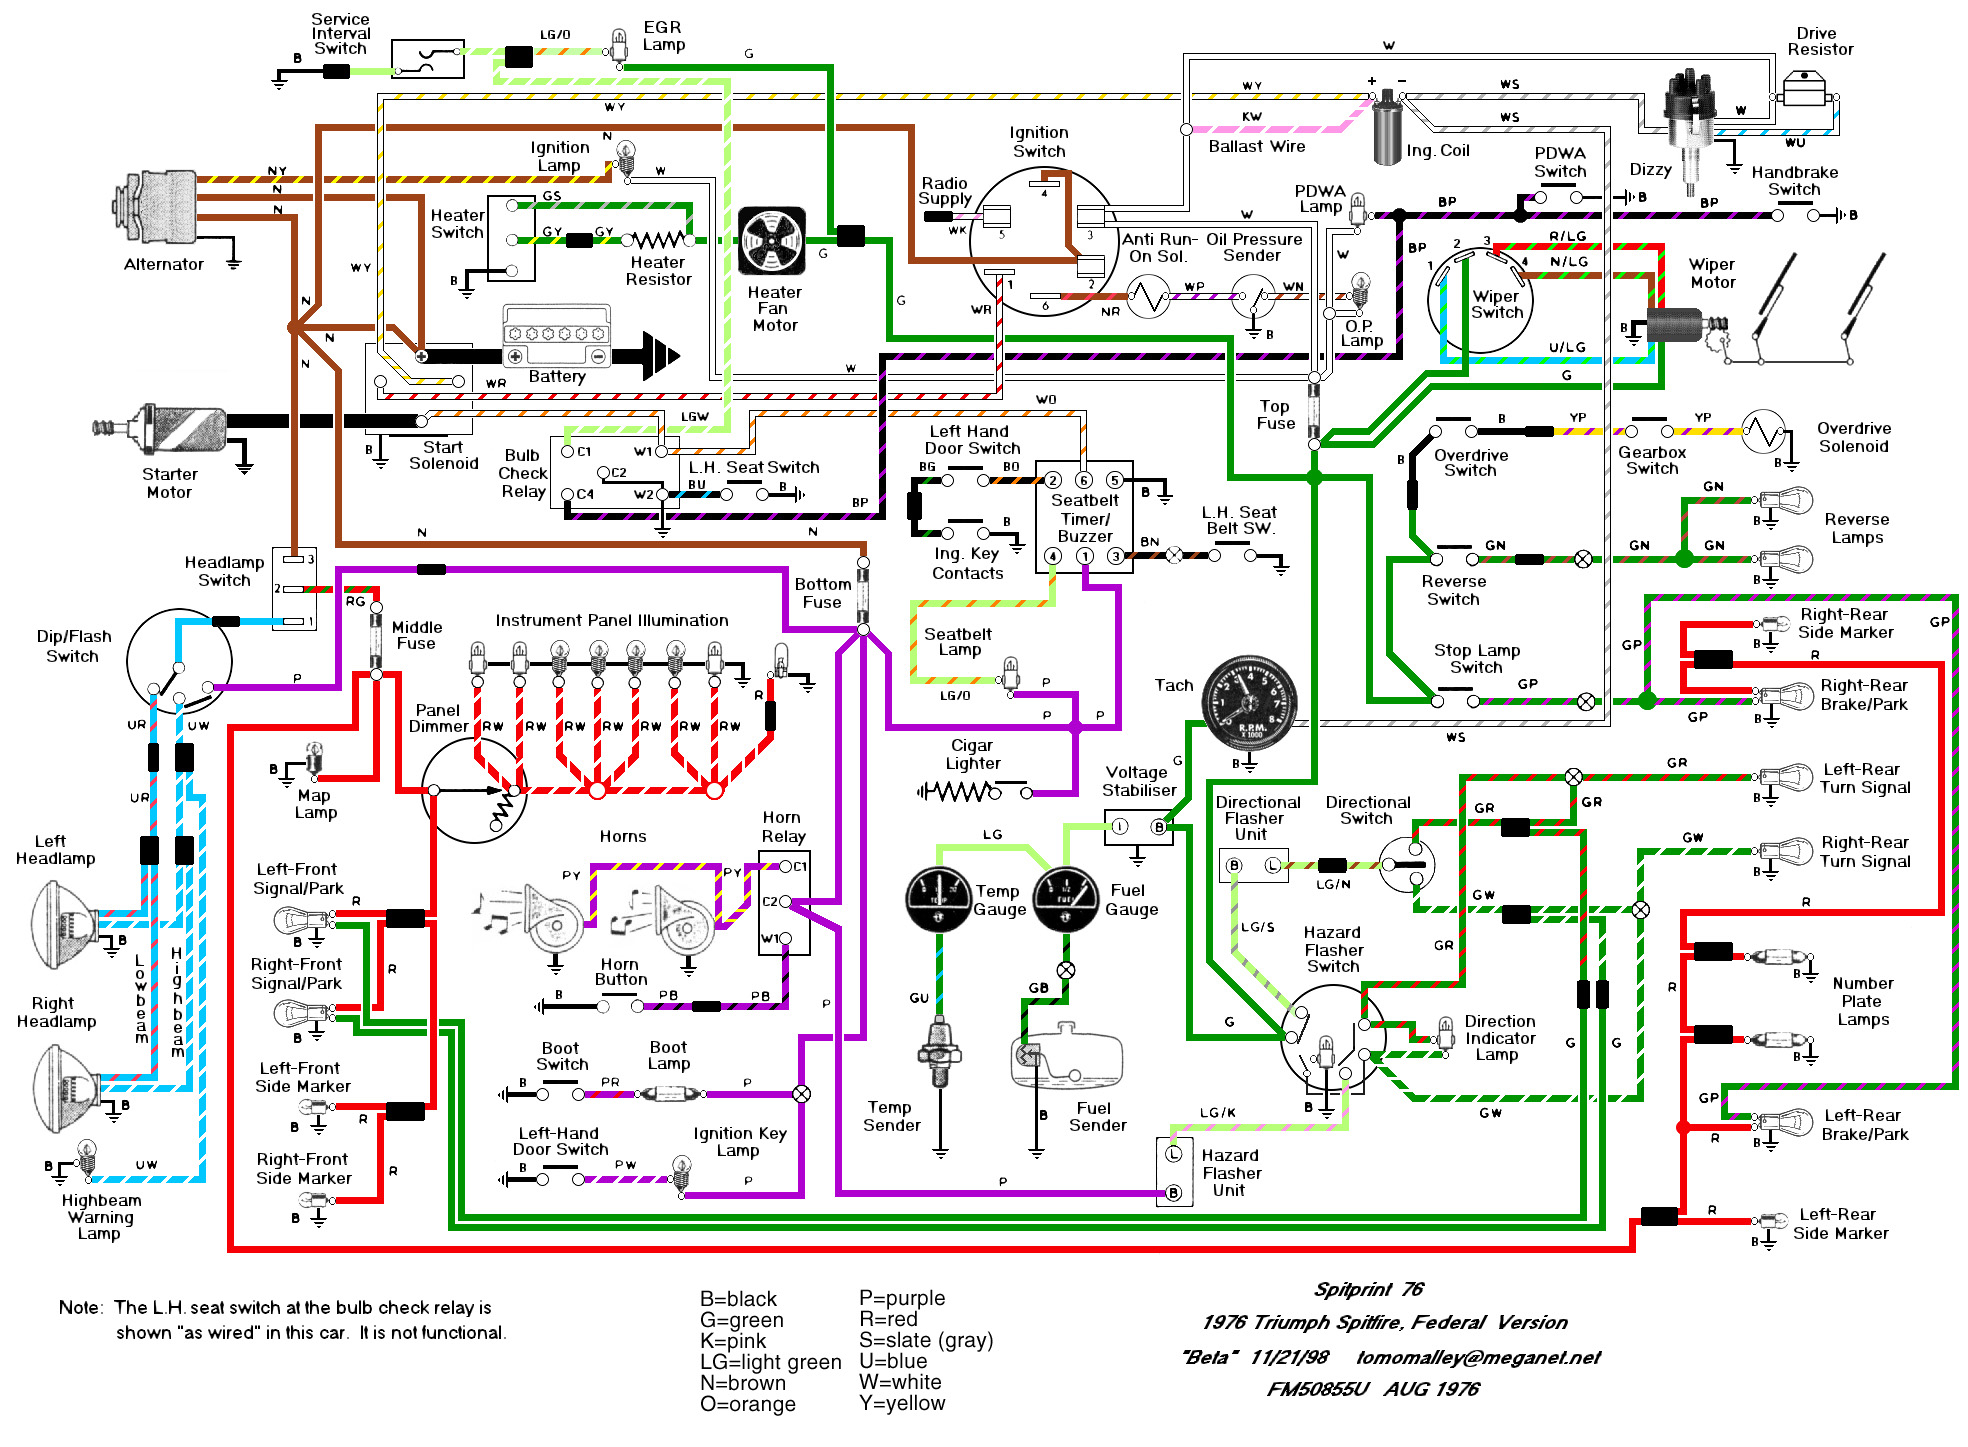 wiring through schematic wiring diagram for you all u2022 rh onlinetuner co